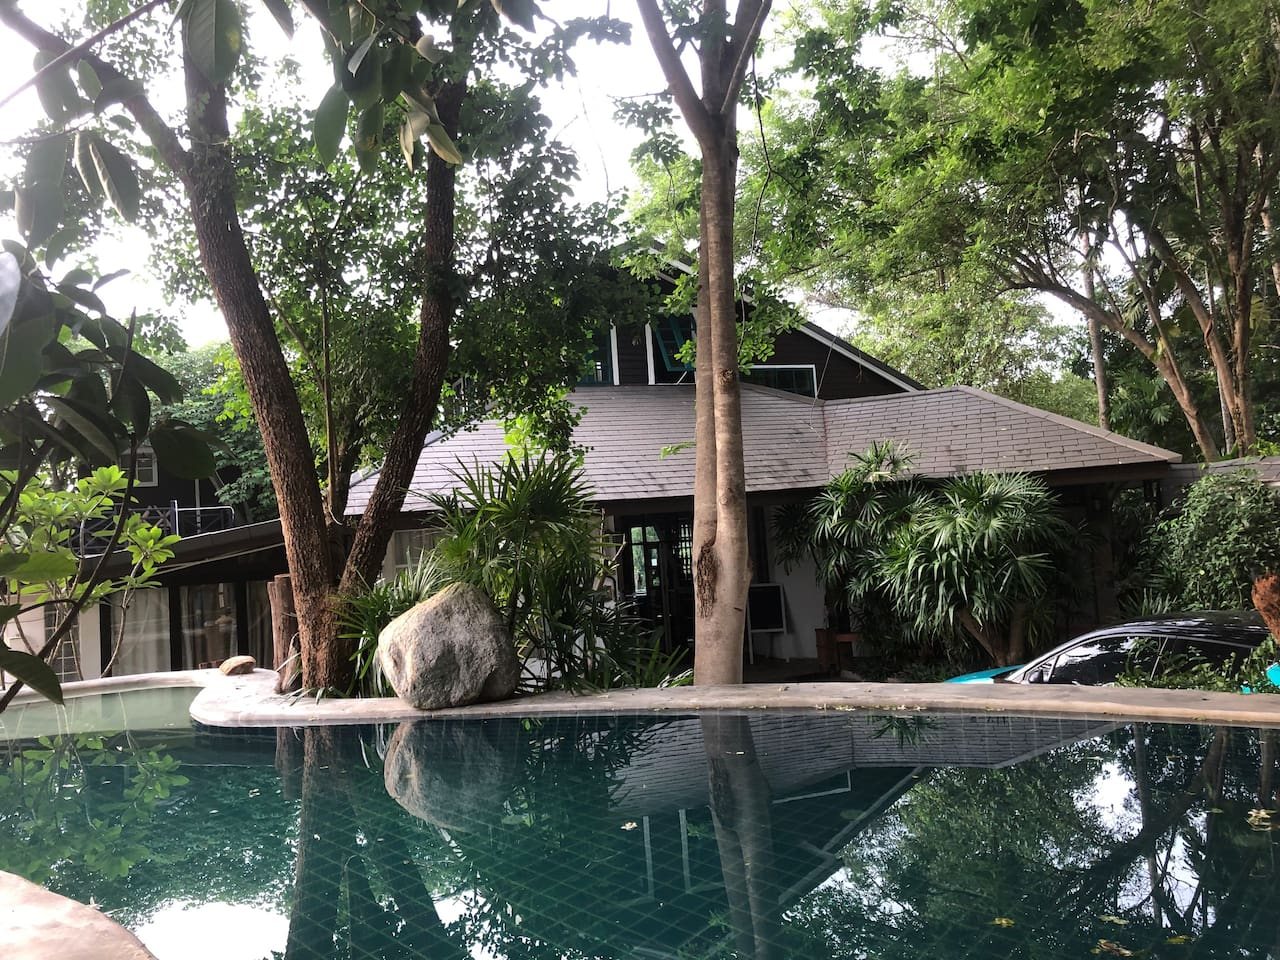 The biggest room on the west side of main house behind the natural style swimming pool and spa.